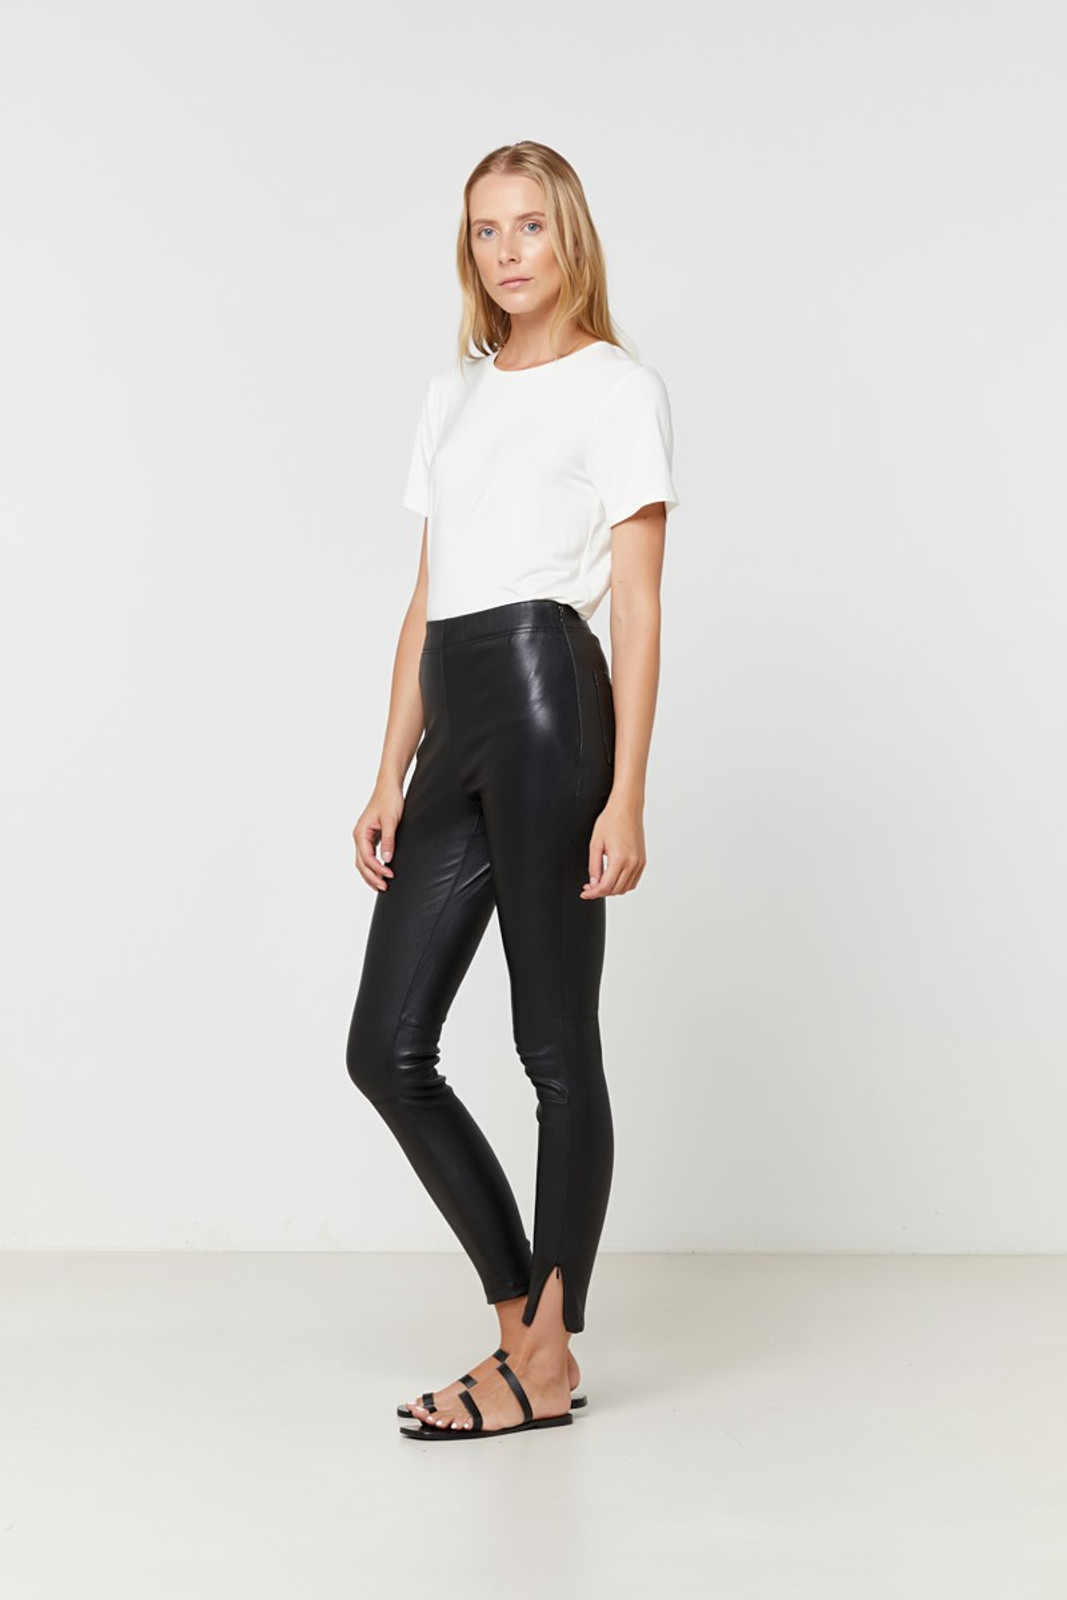 Elka Collective Rosa Leather Pant Black  3